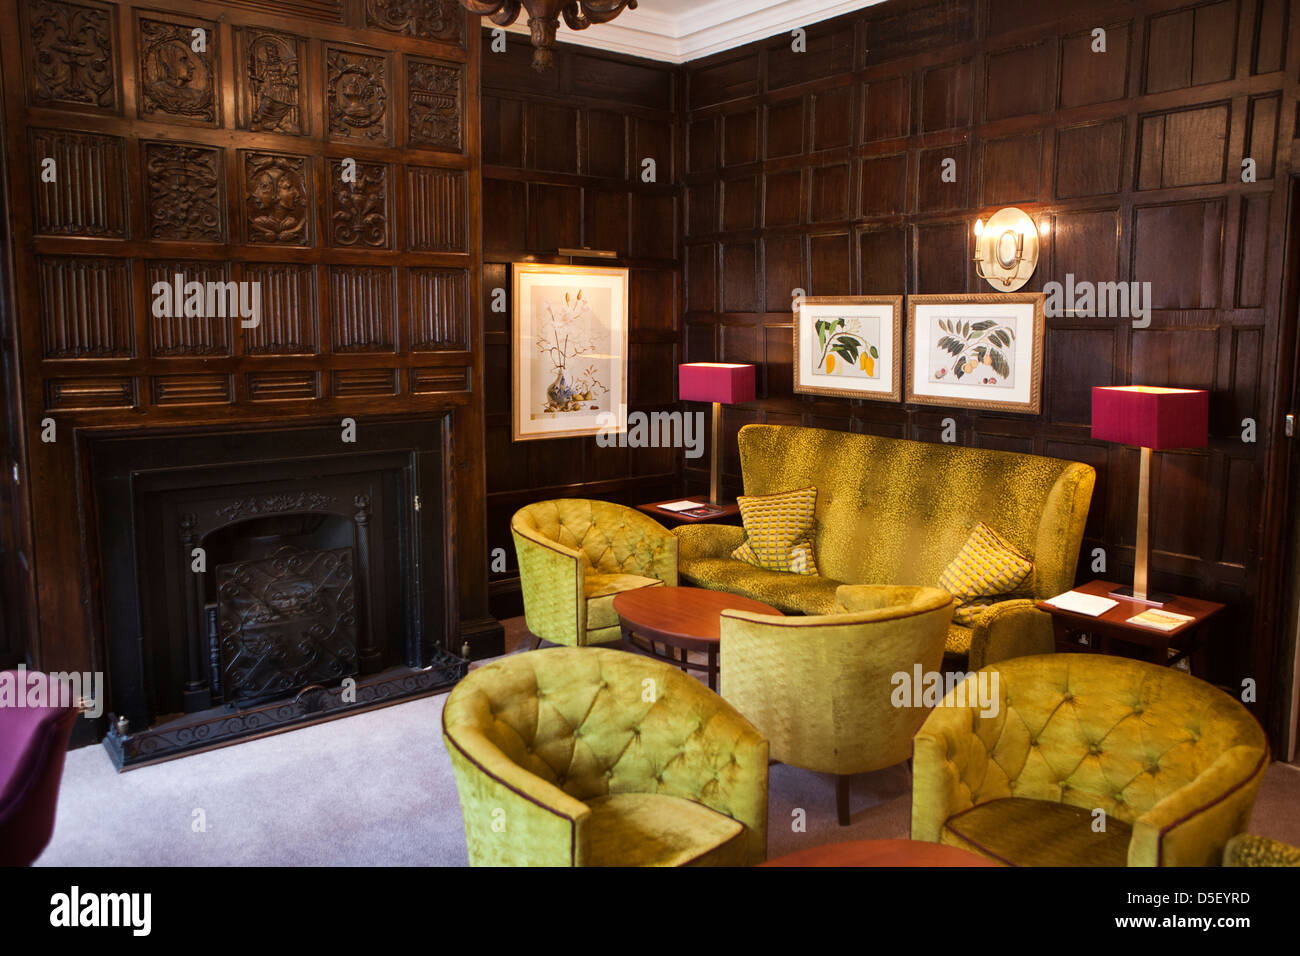 Rooms: England, Berkshire, Windsor Sir Christopher Wren Hotel